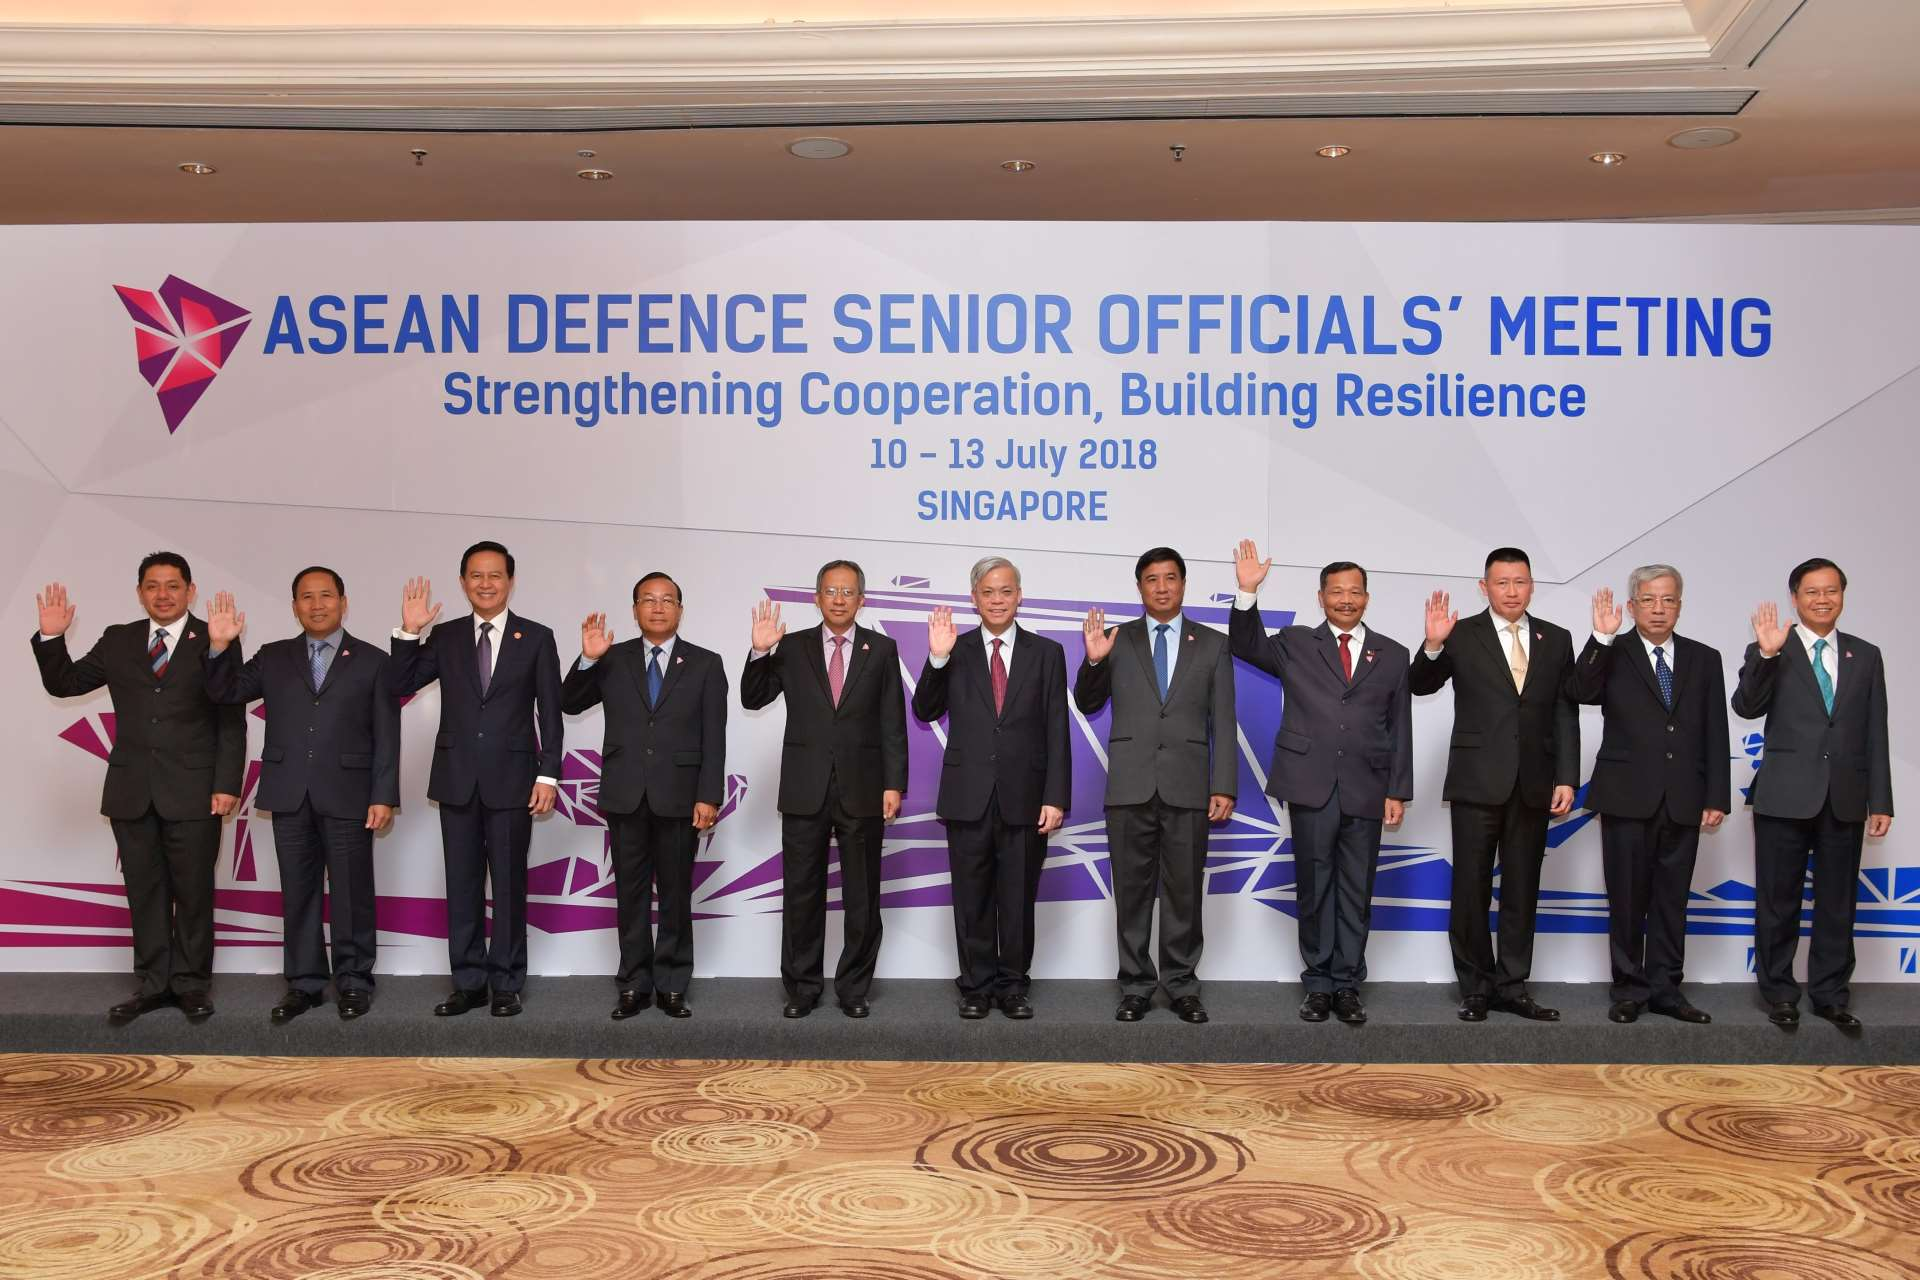 The ASEAN senior defence officials attending the ASEAN Defence Senior Officials' Meeting (ADSOM) held at Mandarin Oriental Hotel, Singapore.